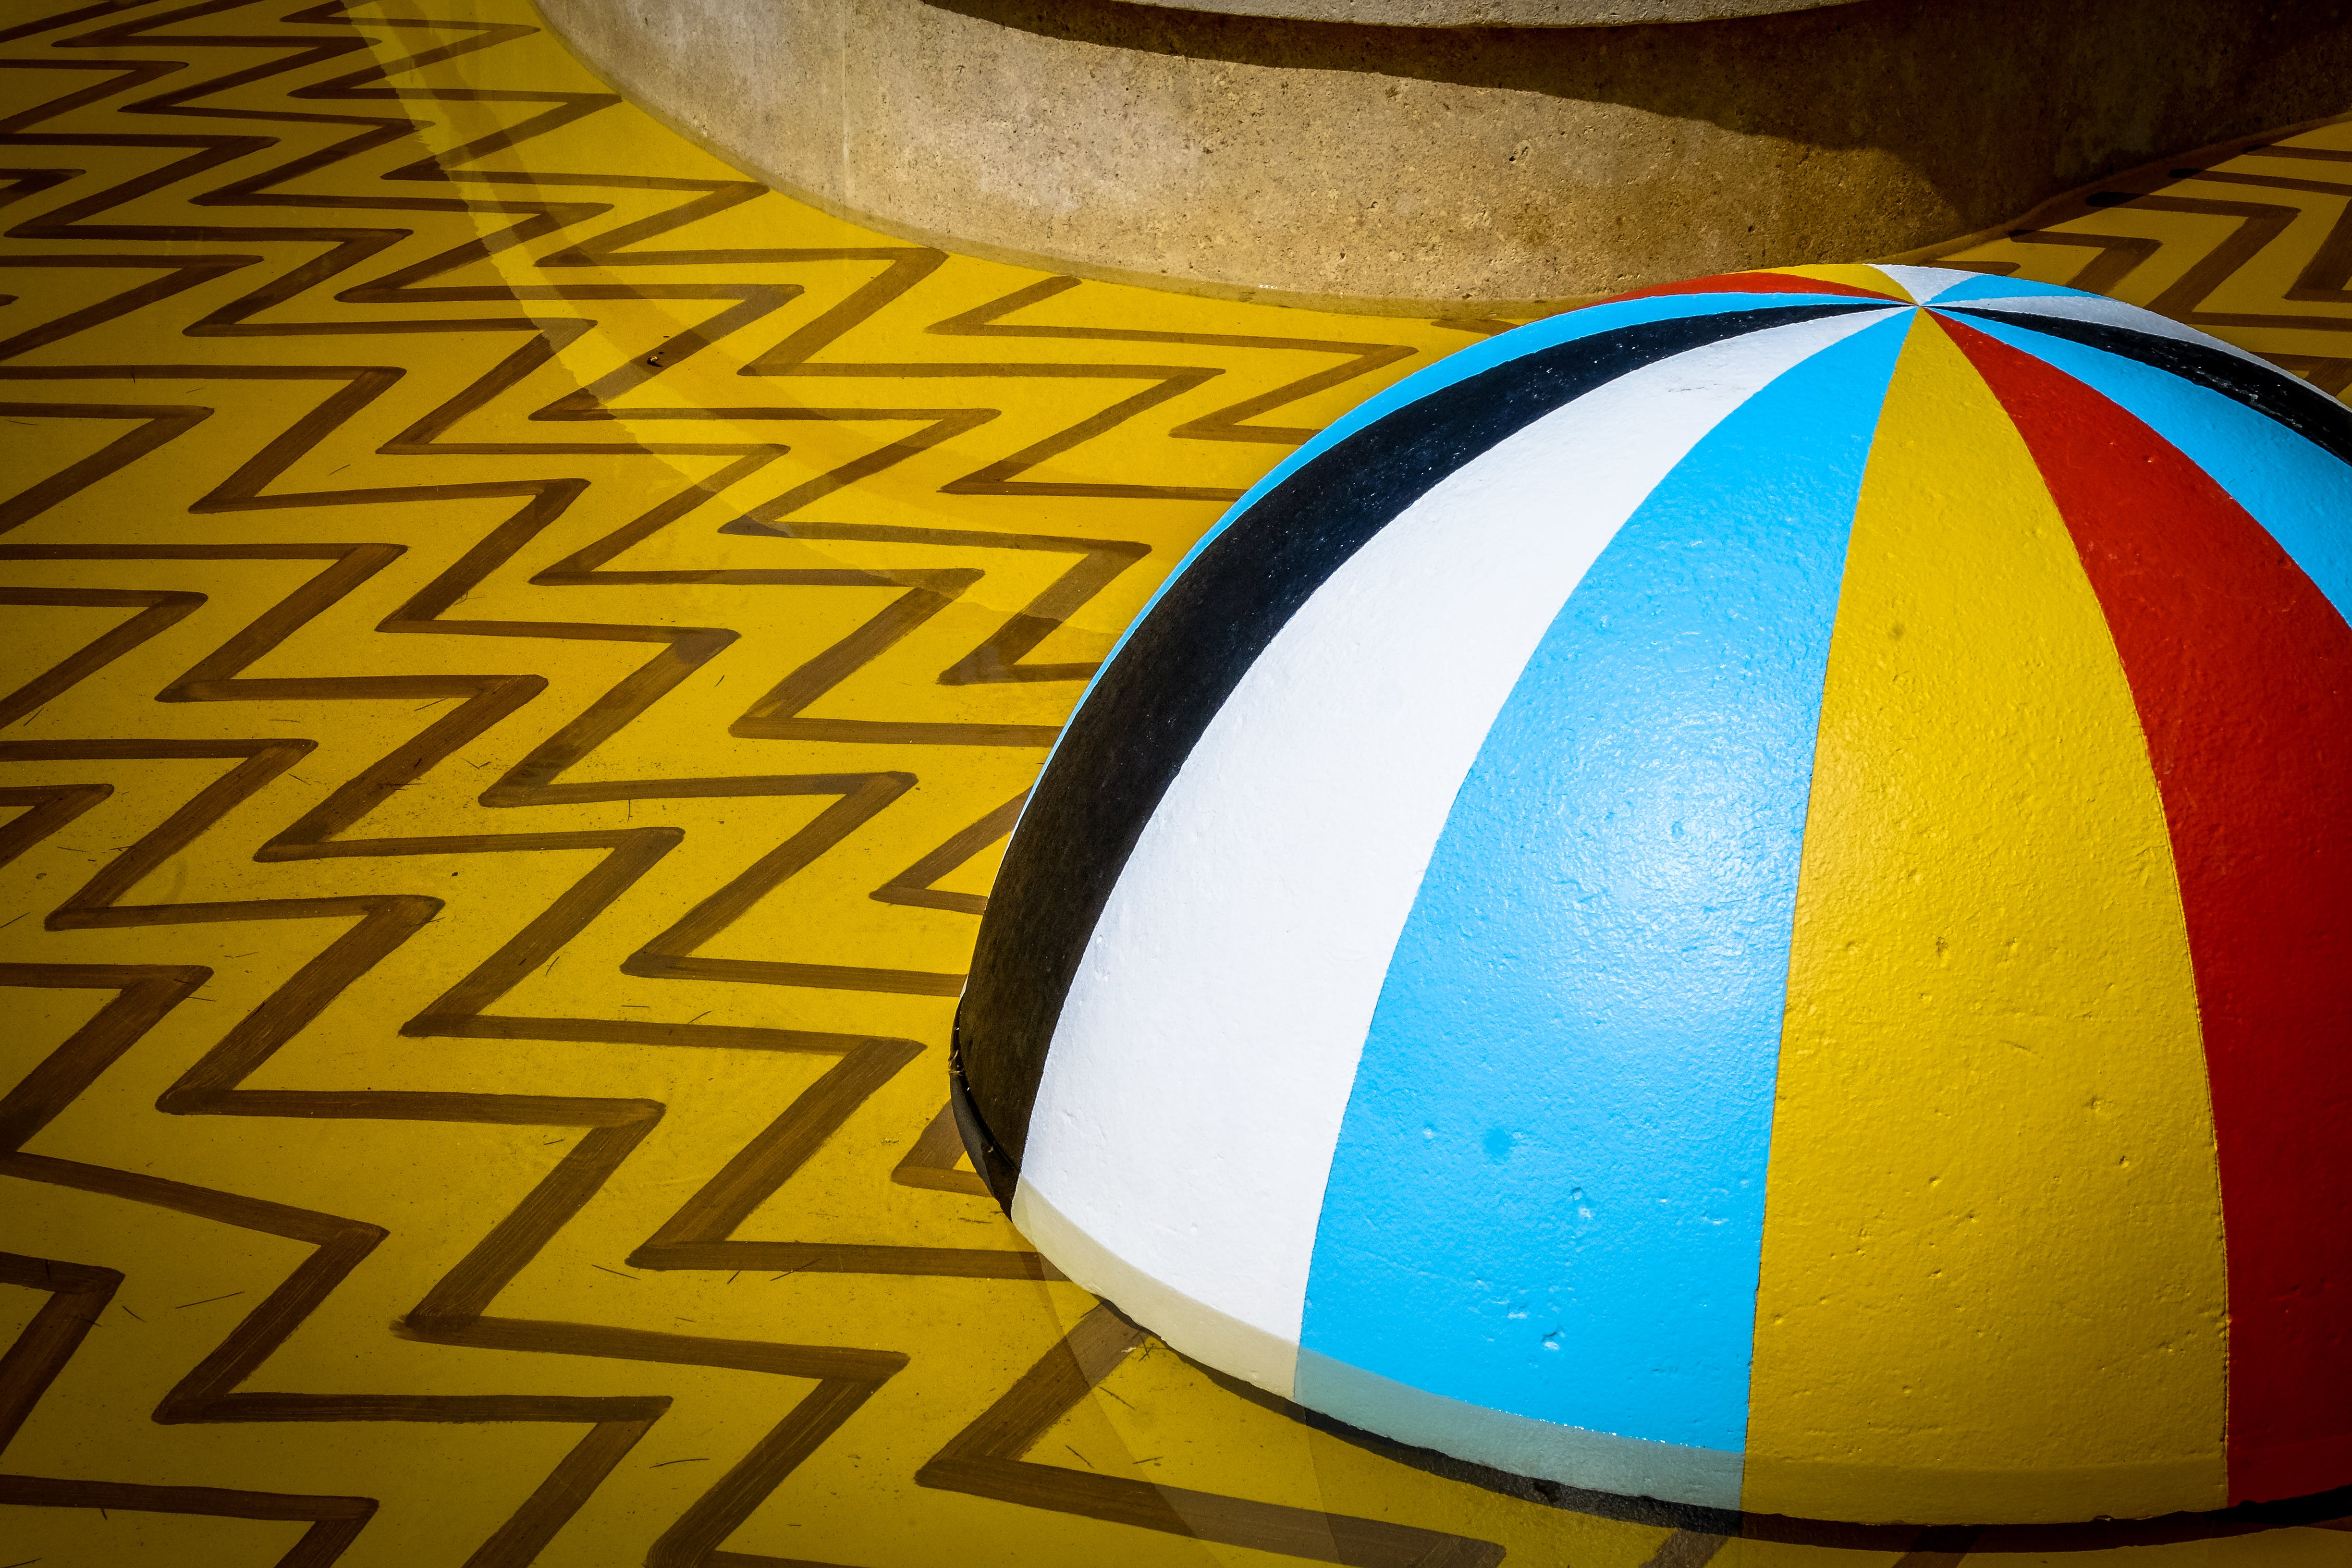 Multicolored Lid on Chevron Flooring